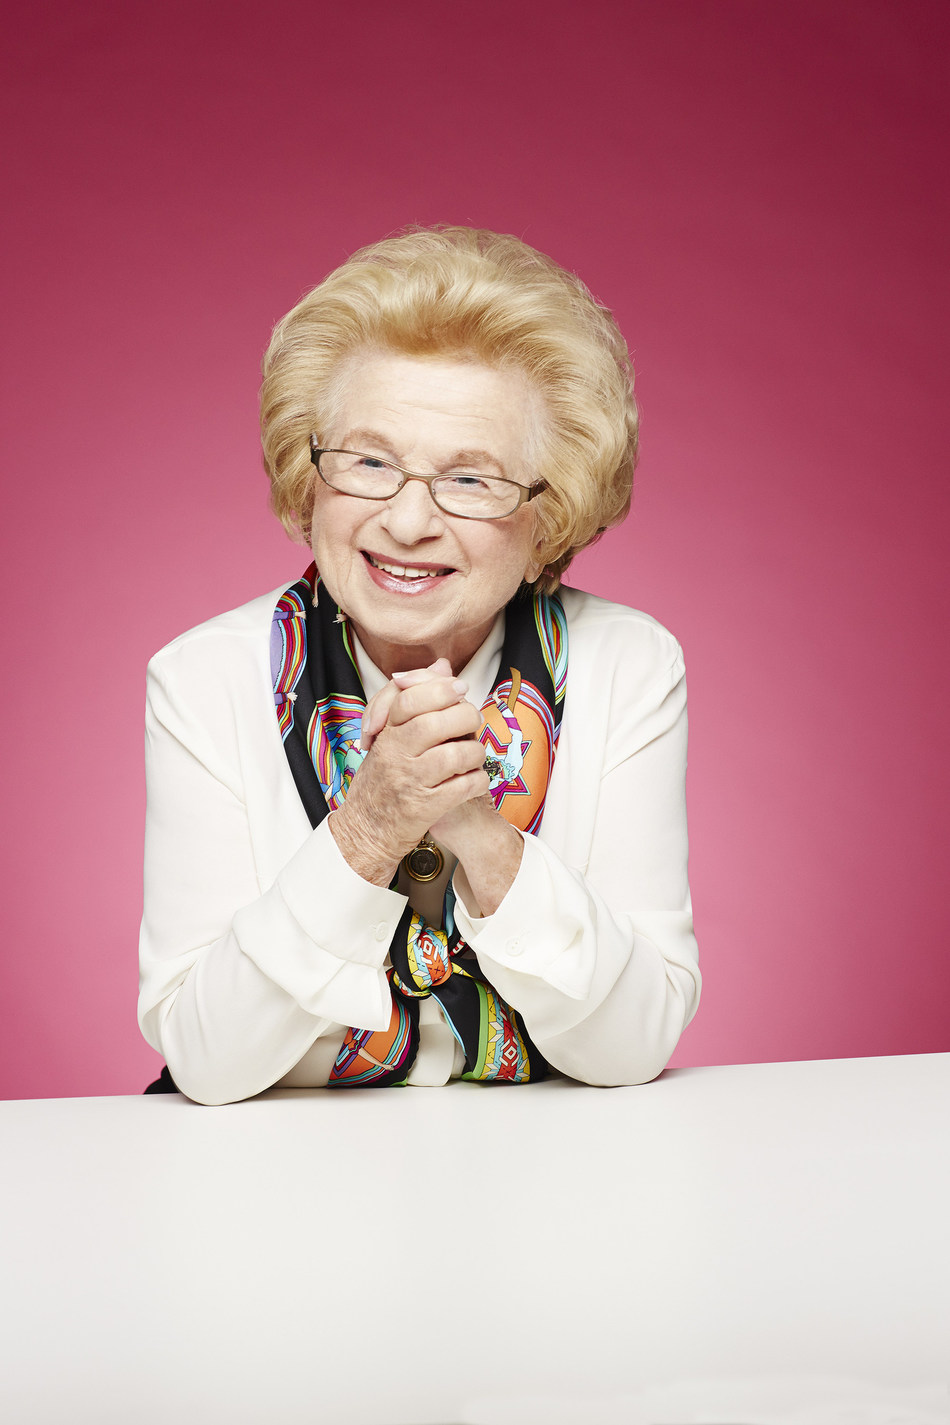 Travel Site Hotwire And Dr. Ruth Westheimer Join Forces To Invite More Americans To Enjoy The Benefits Of Quickie Trips